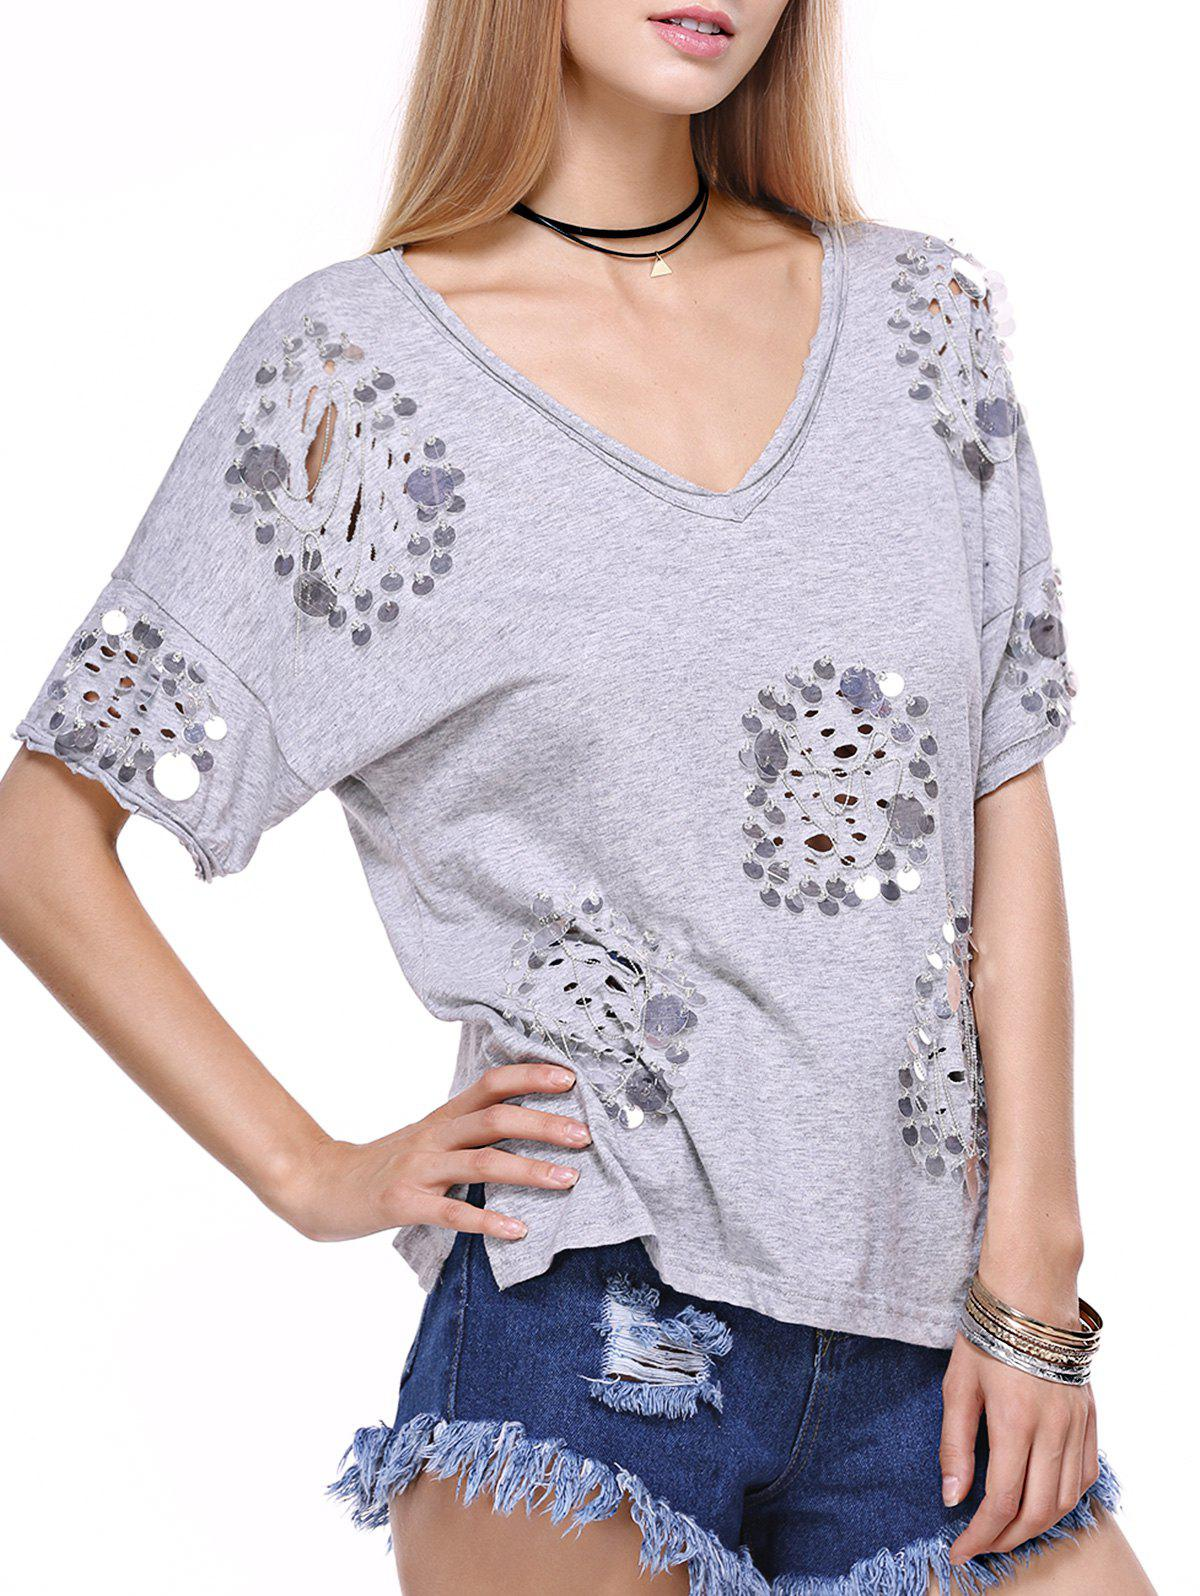 V Neck Sequins Embellish T-Shirt - GRAY ONE SIZE(FIT SIZE XS TO M)